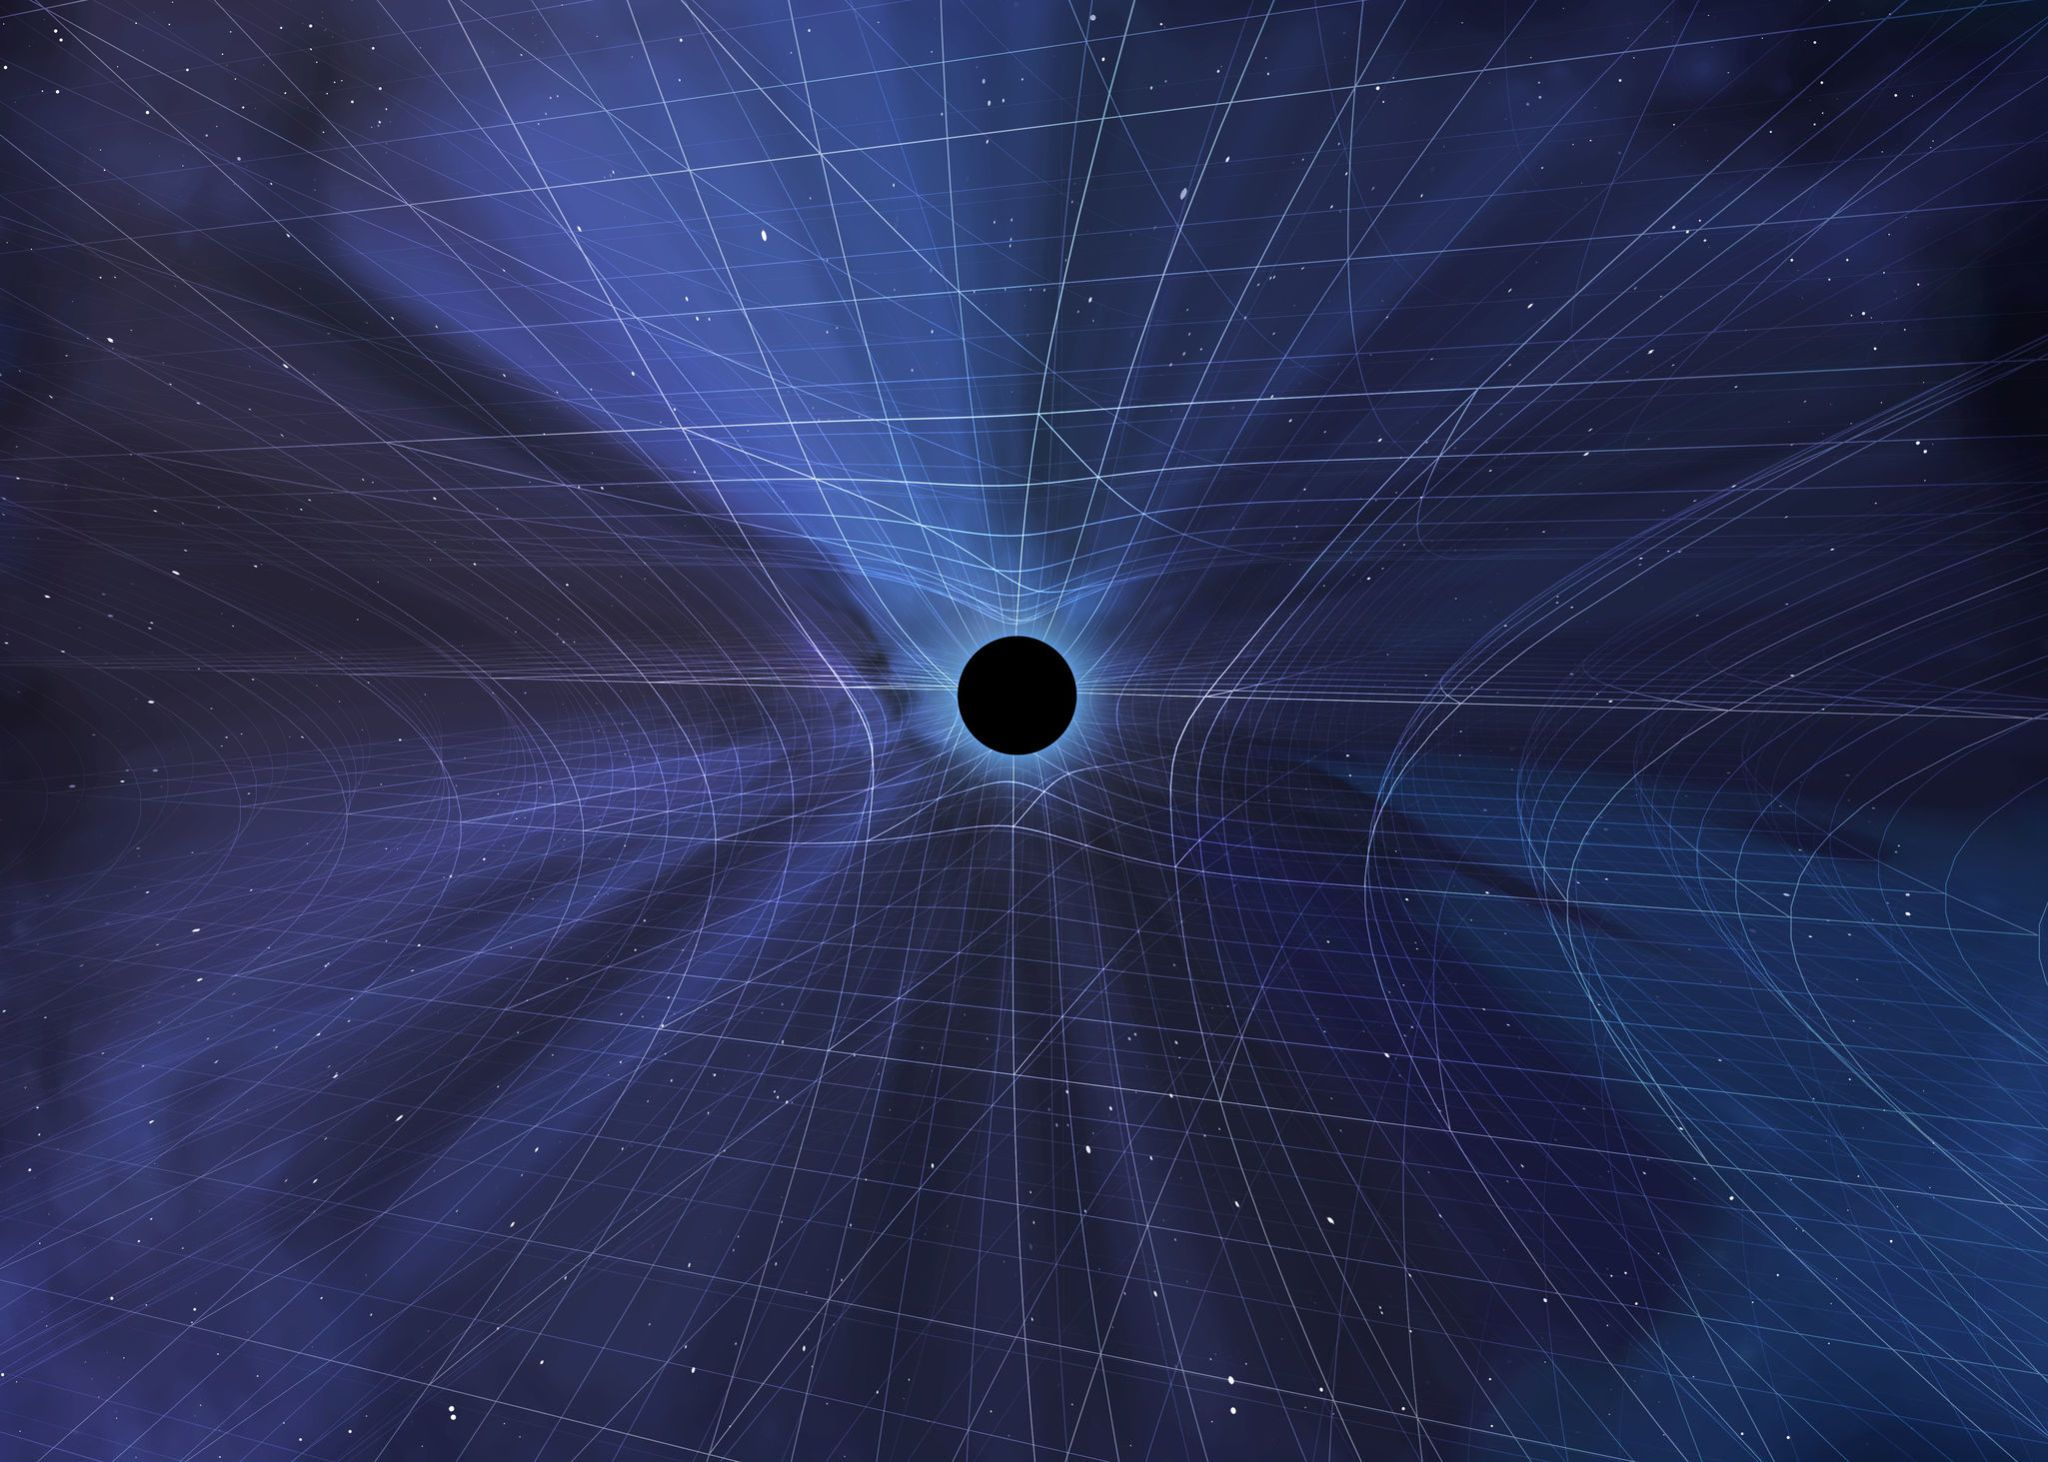 New Theory of the Higgs Boson Could Explain Why Gravity Is So Weak